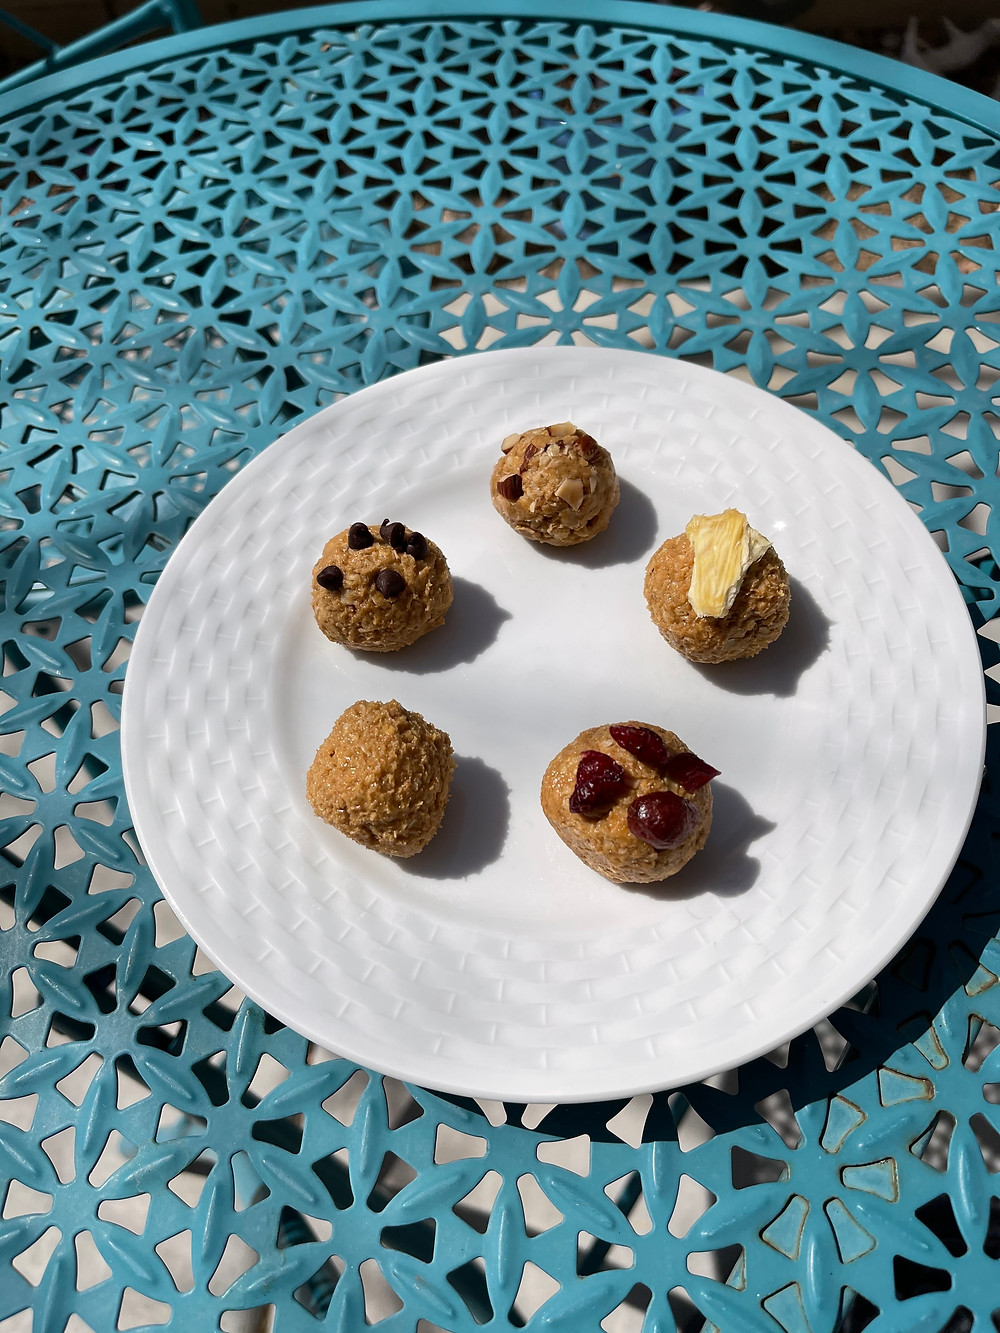 delicious, if not the most visually-appealing, energy balls to take on the trail. Peanut butter, honey, oats, and other goodies all rolled together on a plate resting on a blue table